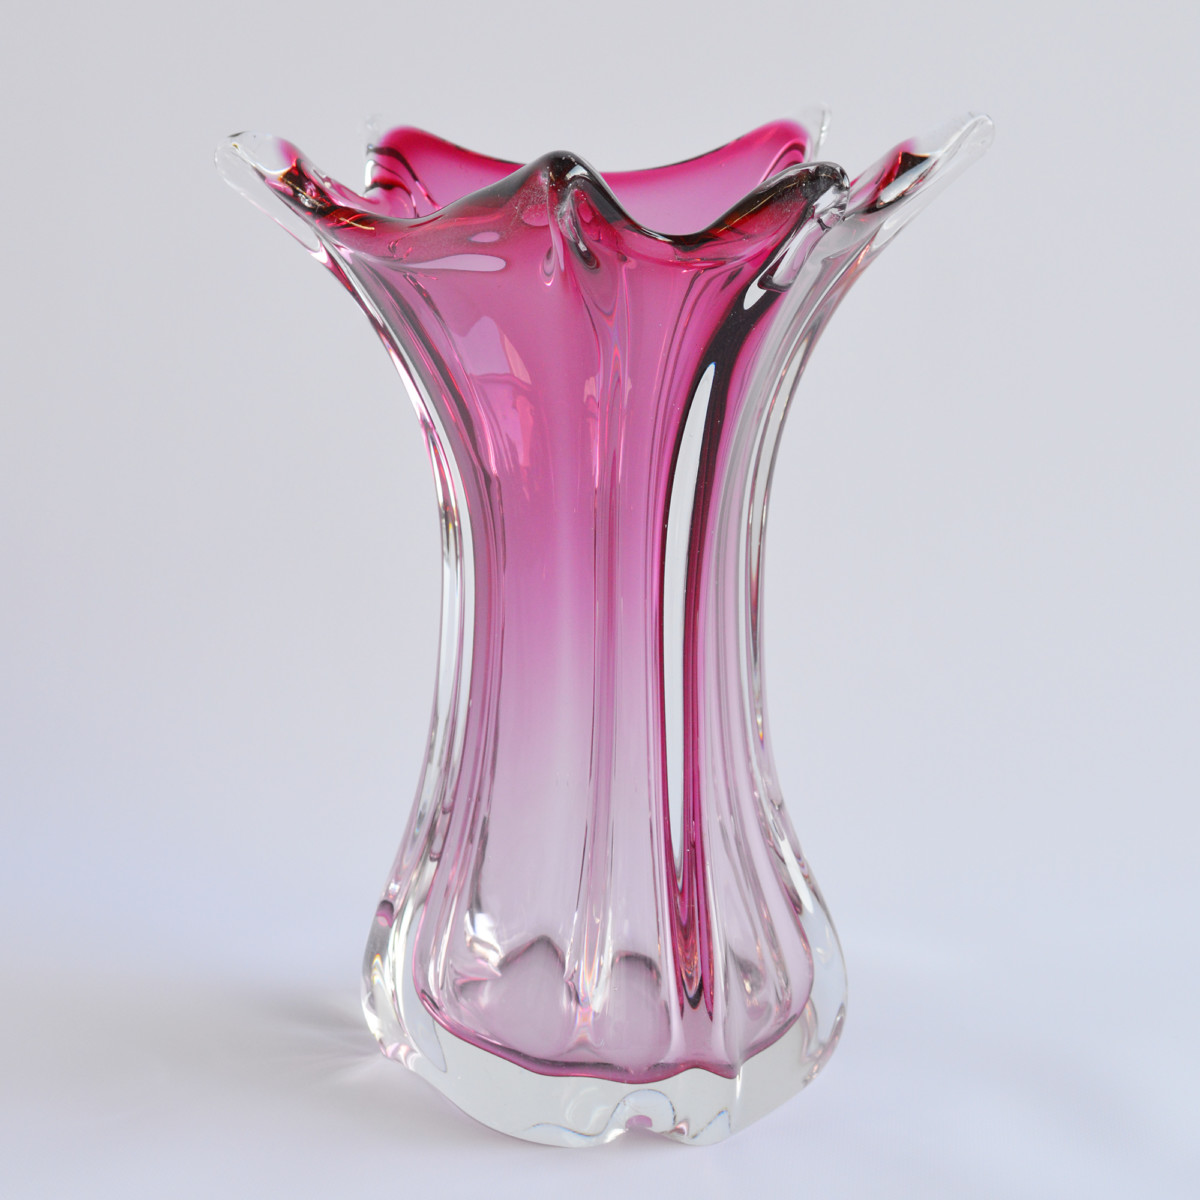 seltene murano glas vase 1960er im design sortiment midmodern. Black Bedroom Furniture Sets. Home Design Ideas